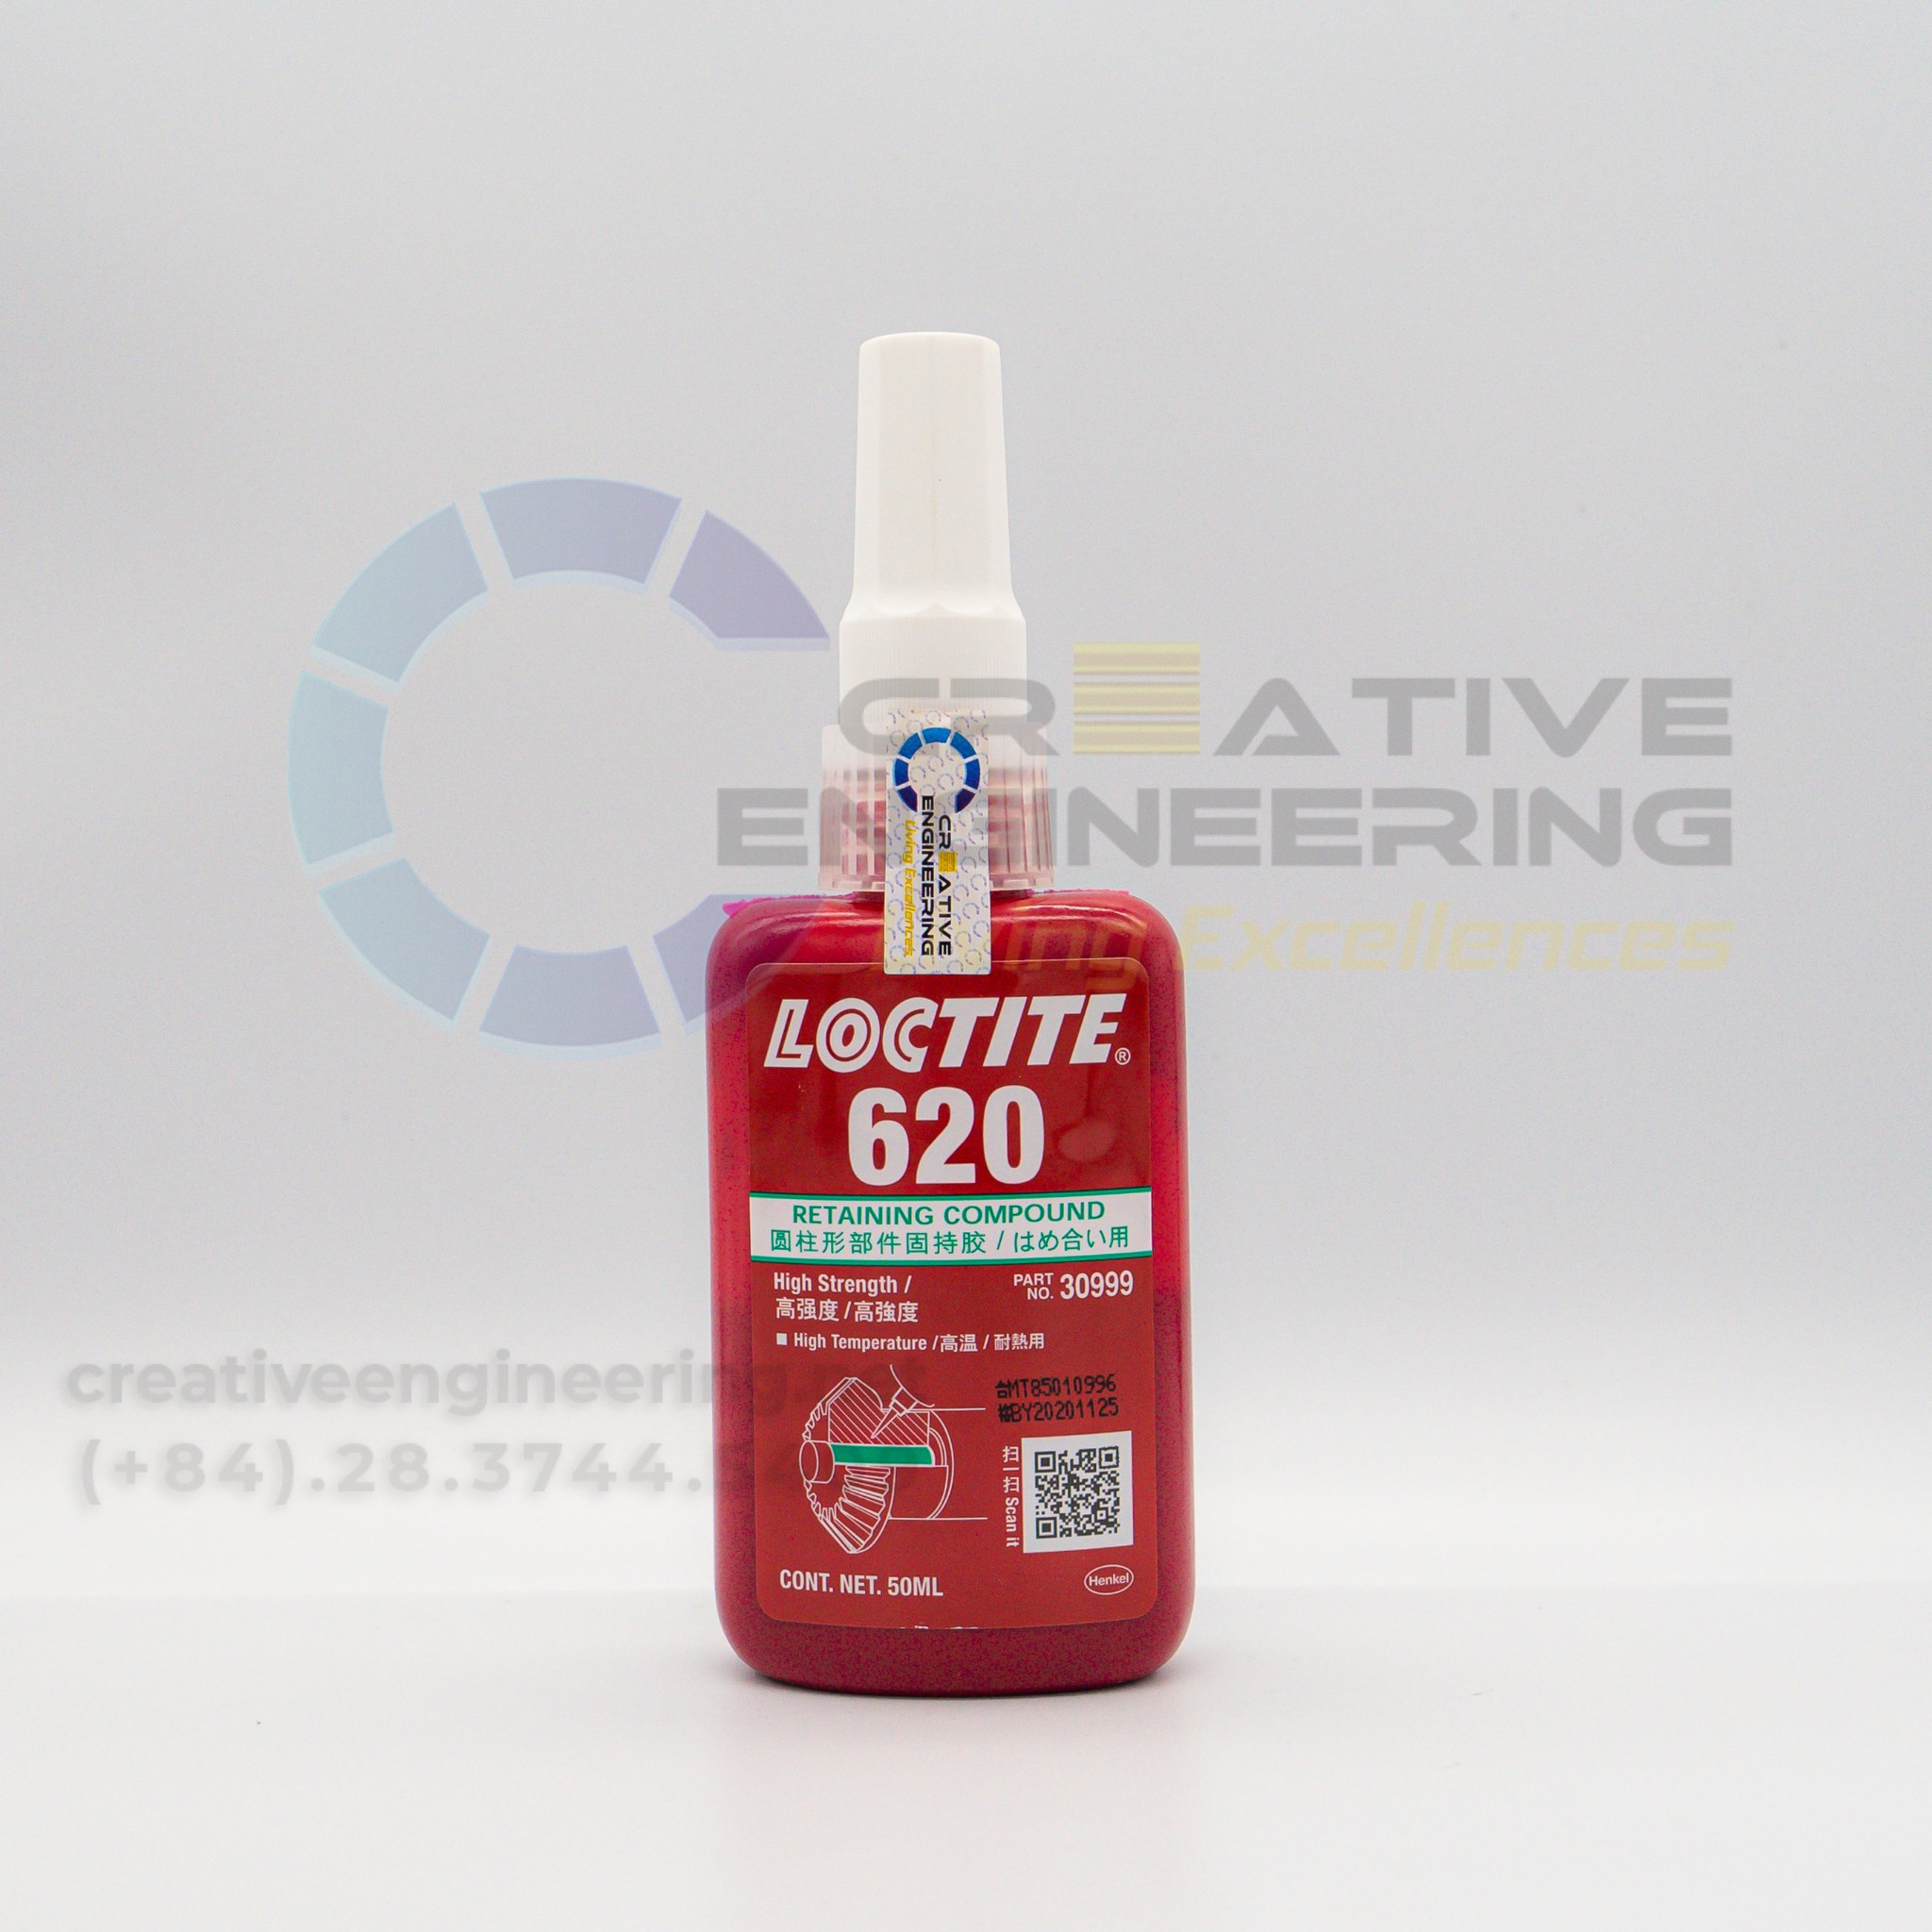 Loctite 620 – Keo chống xoay